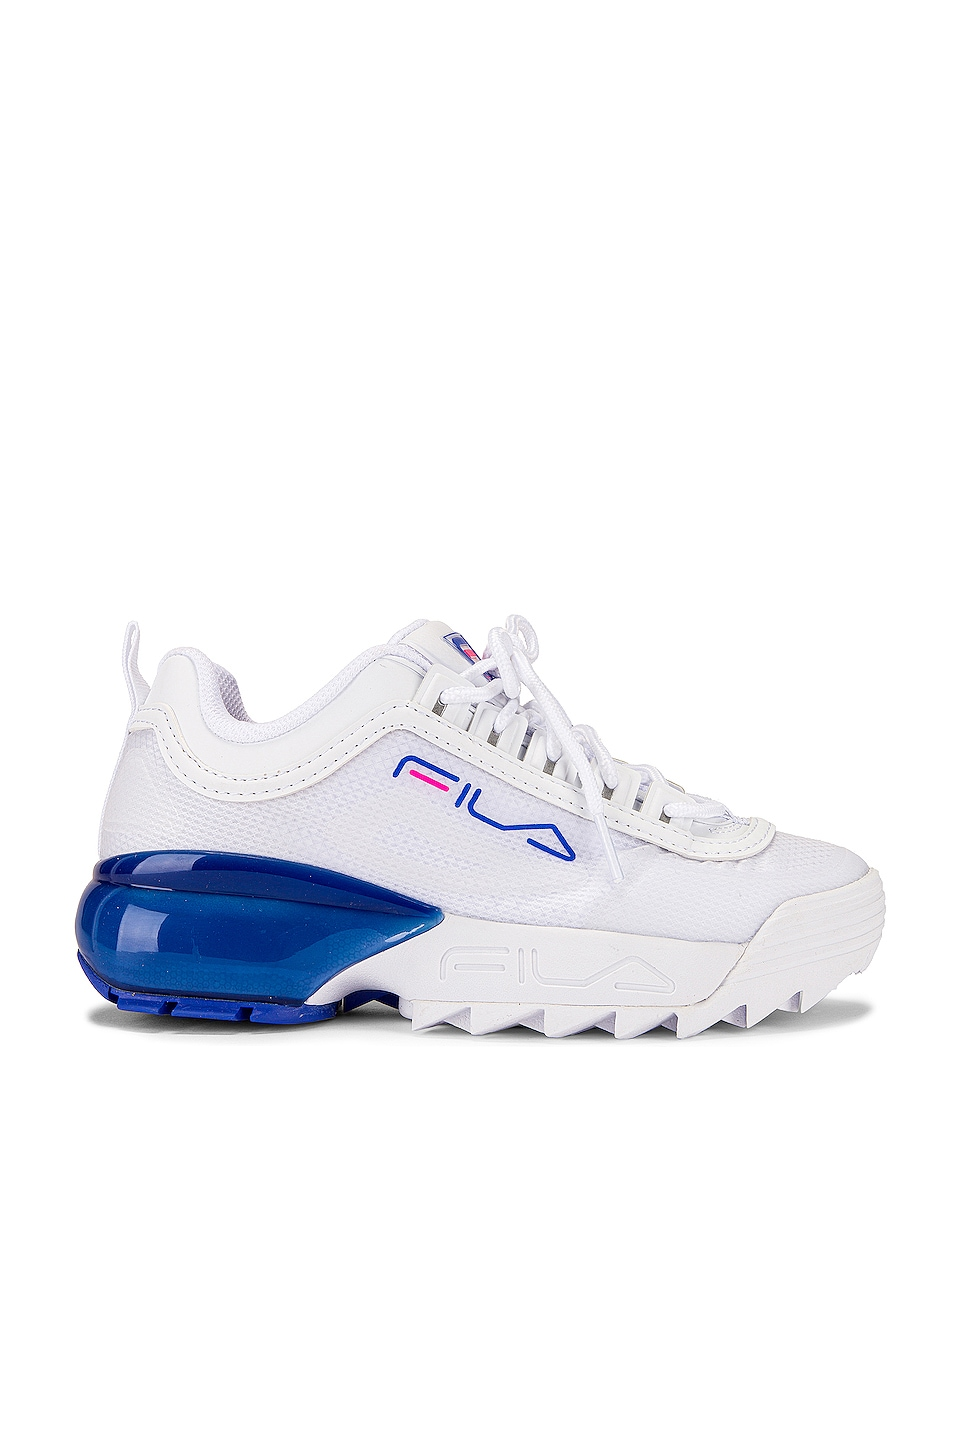 fila blue and white sneakers